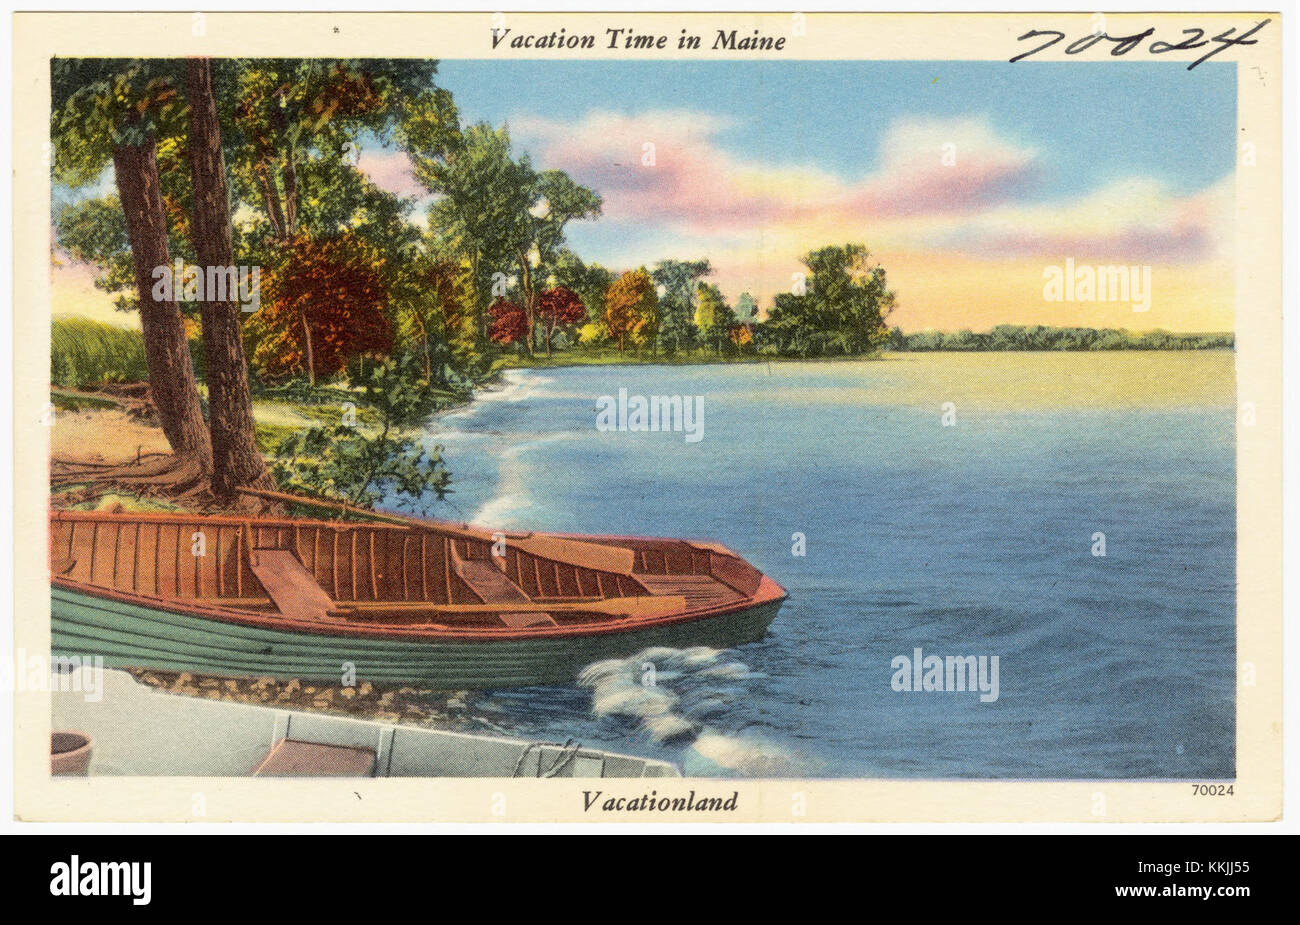 Vacation time in Maine, Vacationland (70024) - Stock Image